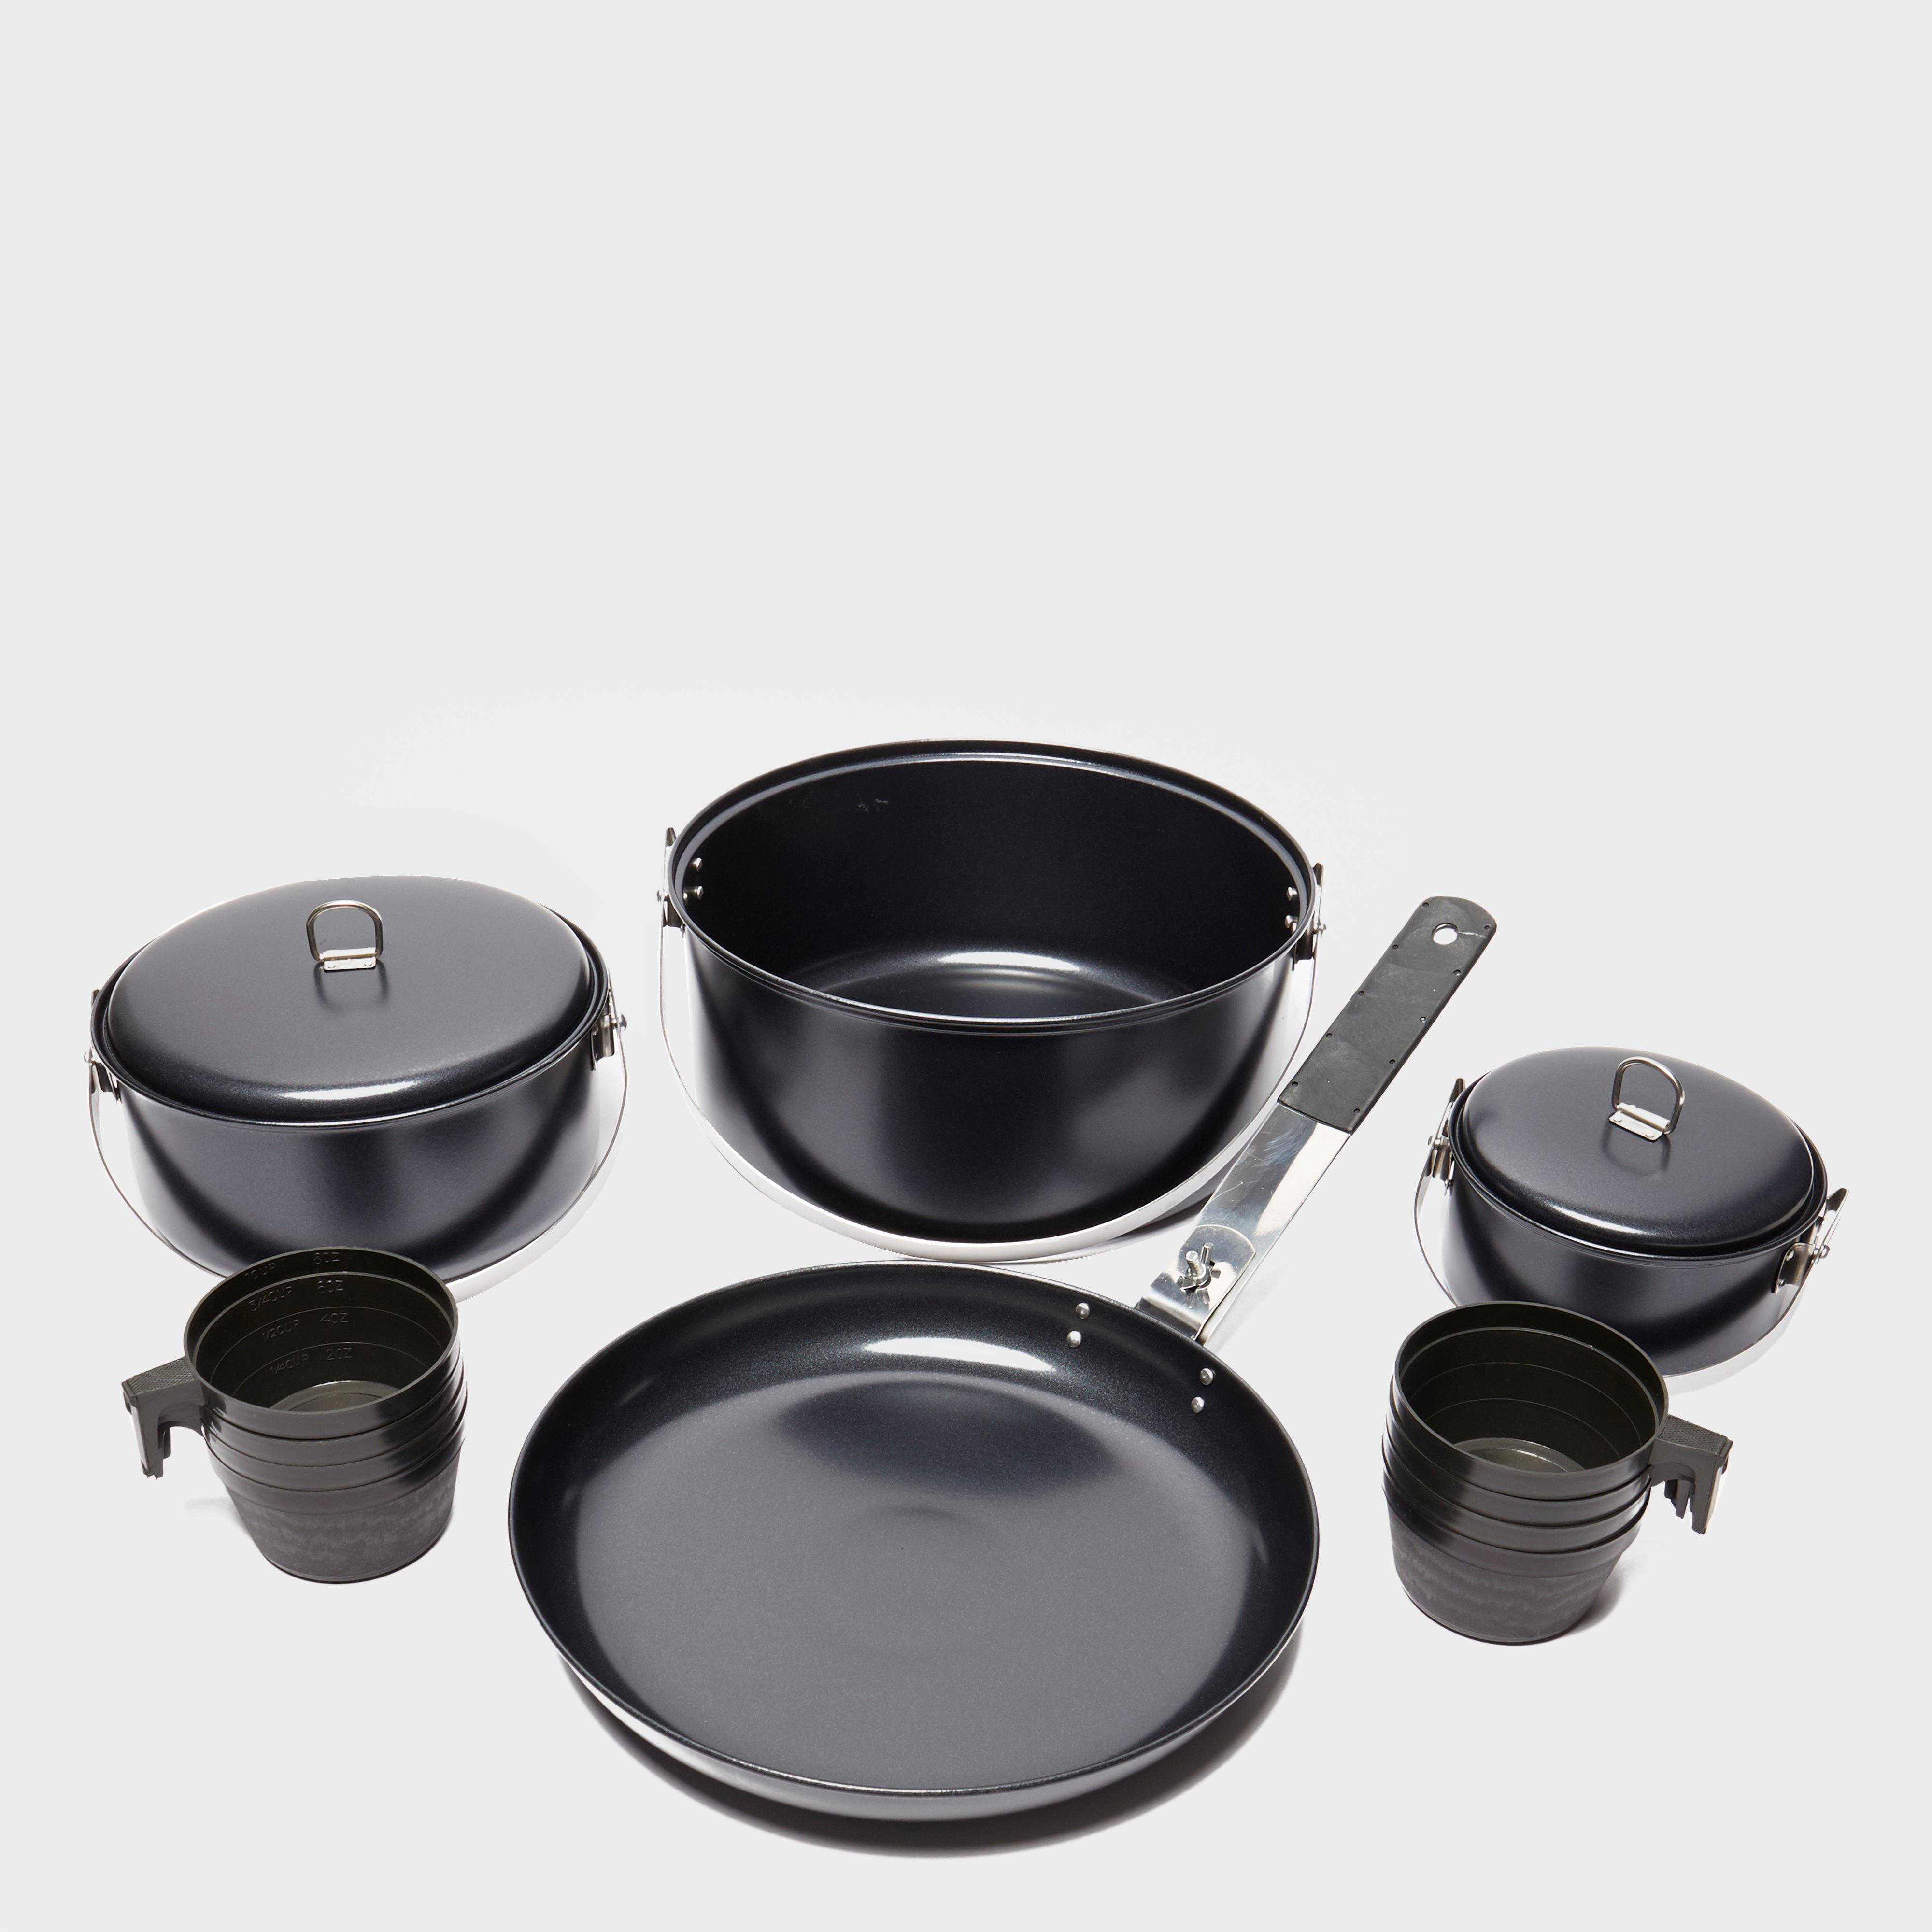 Vango Non Stick Cook Set with Cups Black